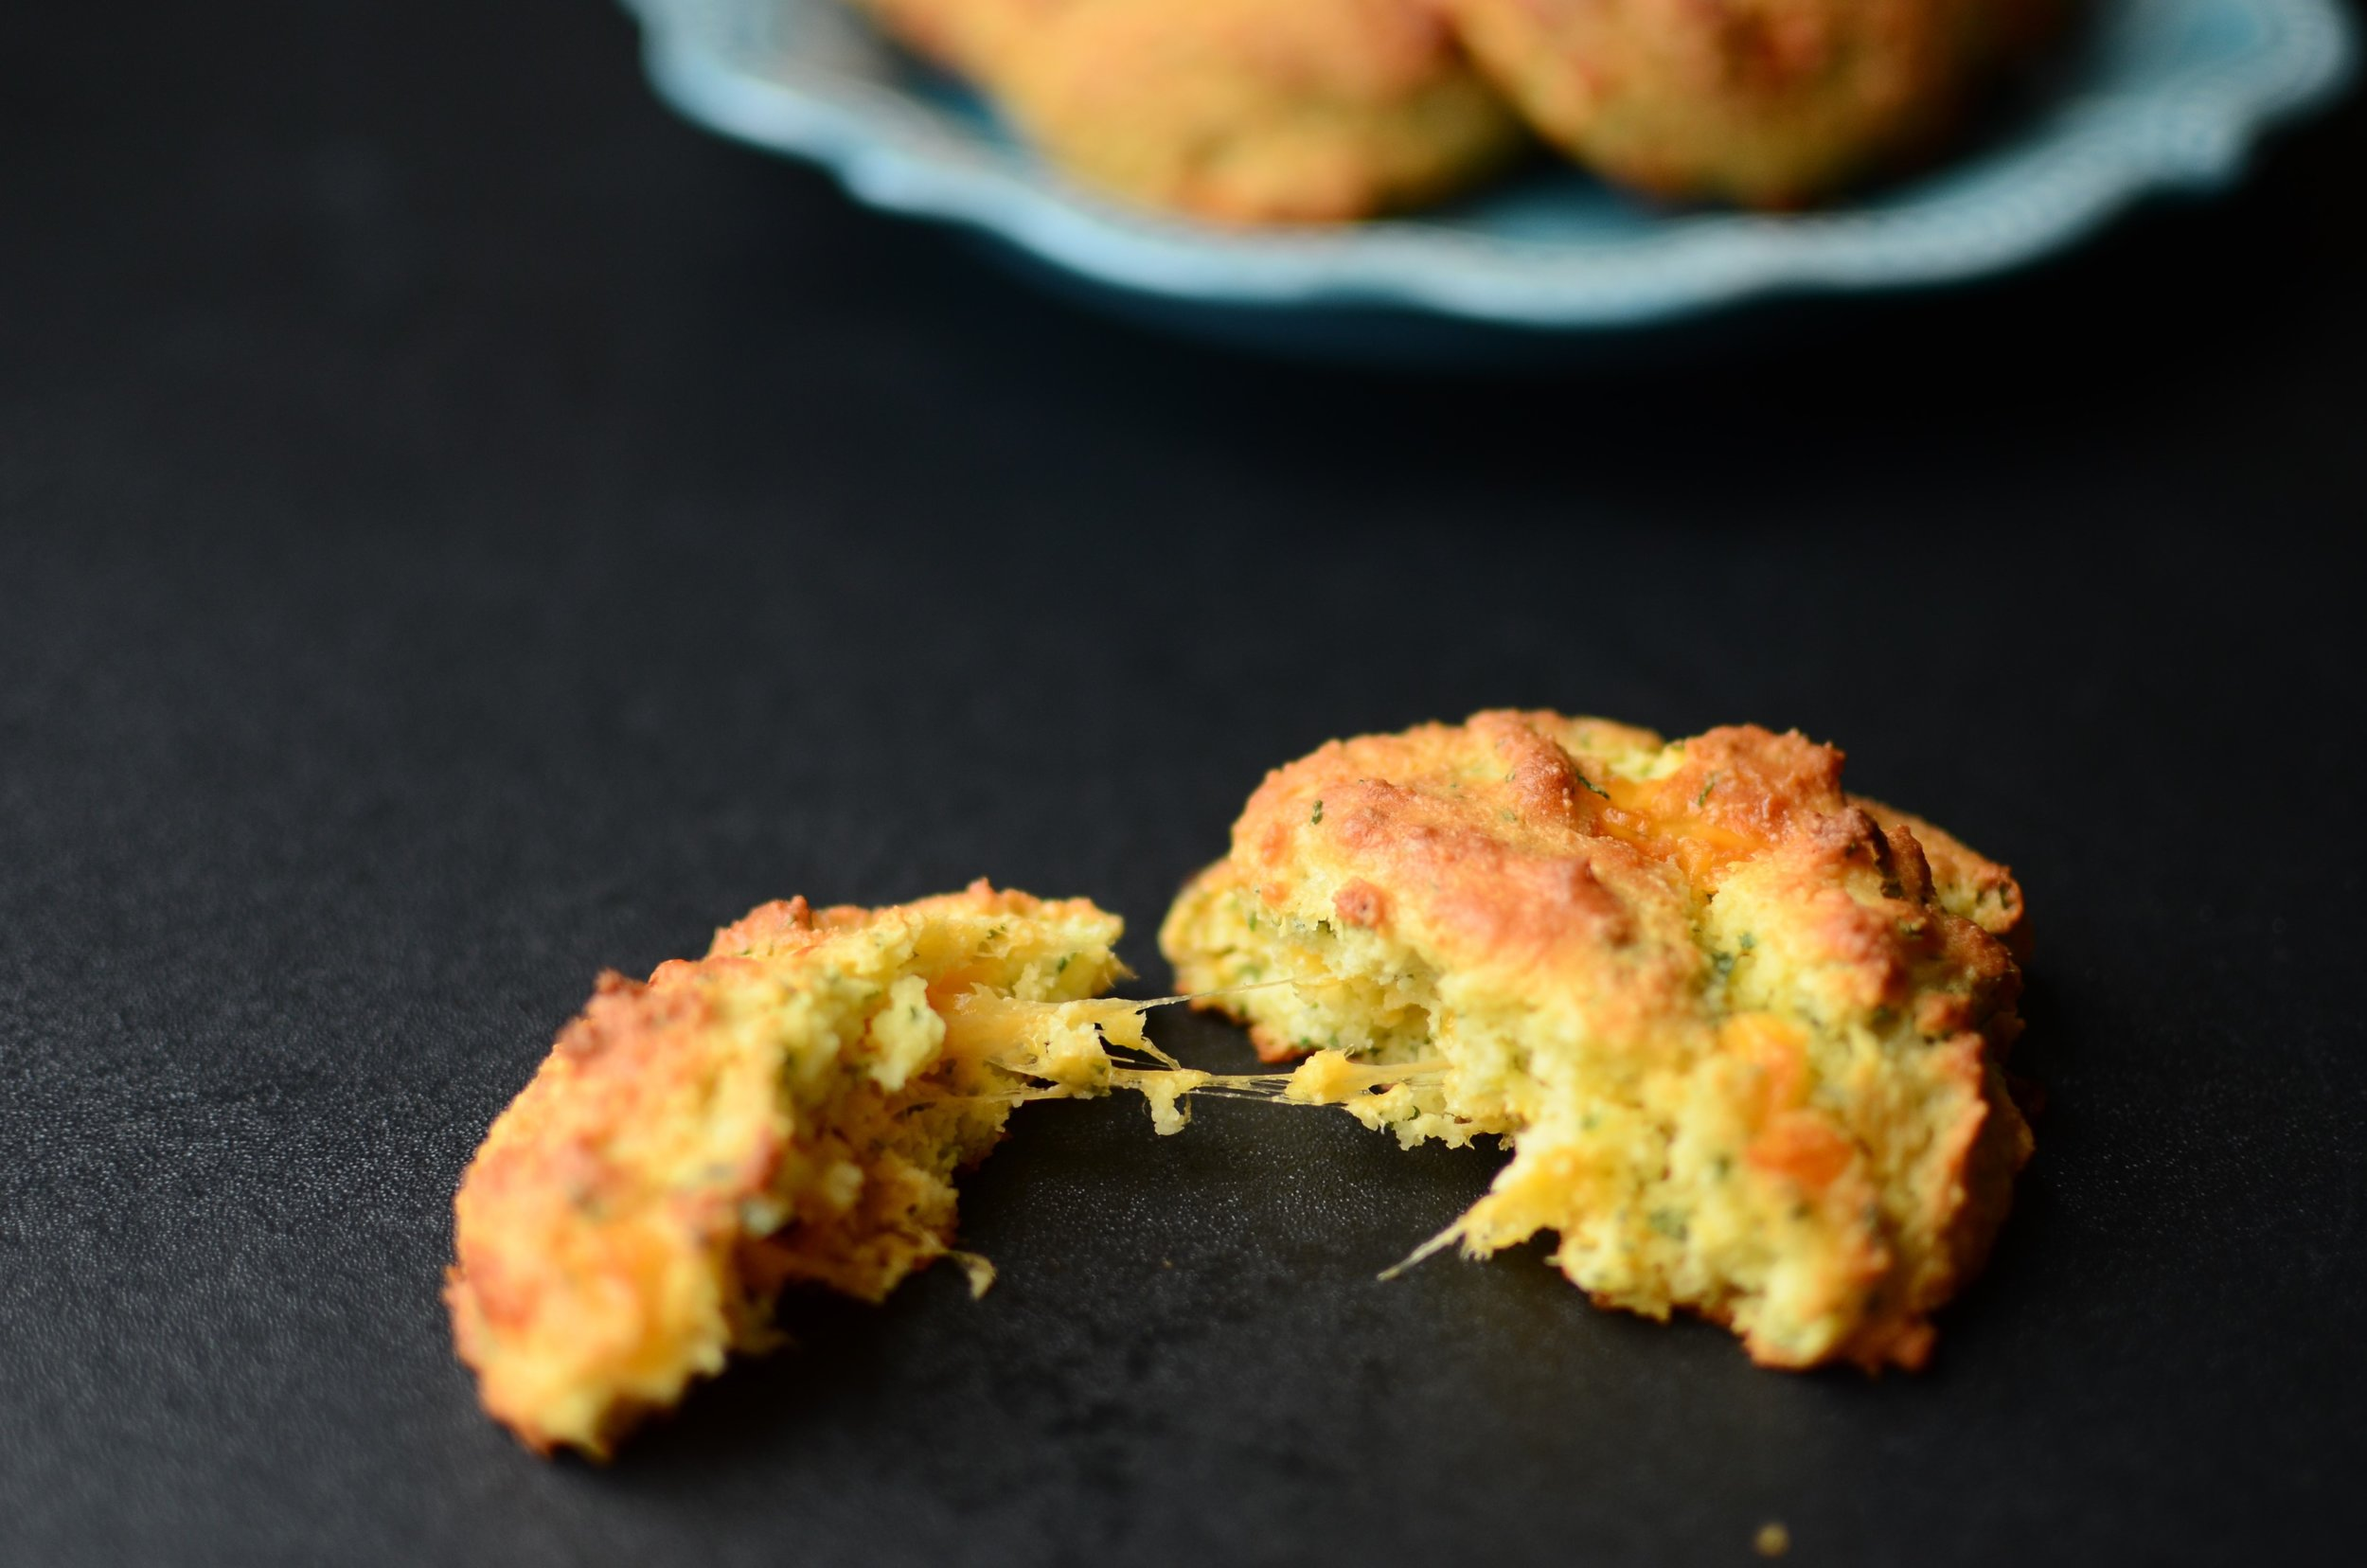 Keto Cheddar Bay Biscuits (Low-Carb, Gluten-Free) - ButterYum -- keto red lobster biscuits. red lobster keto biscuits. keto cheddar biscuits. keto cheddar bay biscuits. cheddar bay biscuits keto. keto cheesy biscuits. low carb cheddar biscuits. low carb cheddar bay biscuits. low carb cheese biscuits. low carb garlic cheese biscuits. keto cheese biscuits with almond flour. keto cheese biscuits almond flour. keto almond flour biscuits. keto almond flour cheddar biscuits. keto almond flour garlic cheese biscuits. cheesy keto biscuits. almond flour cheese biscuits. almond flour red lobster biscuits. almond flour cheddar biscuits. almond flour keto biscuits. cheddar biscuits keto. keto biscuits cheese. keto garlic cheddar biscuits. cheddar keto biscuits. cheese keto biscuits. keto cheddar biscuits almond flour. keto garlic cheese biscuits. keto cheddar cheese biscuits. keto garlic cheddar bay almond flour. keto cheddar bay biscuits almond flour. red lobster keto biscuits. cheddar bay keto biscuits. keto biscuit cheddar.